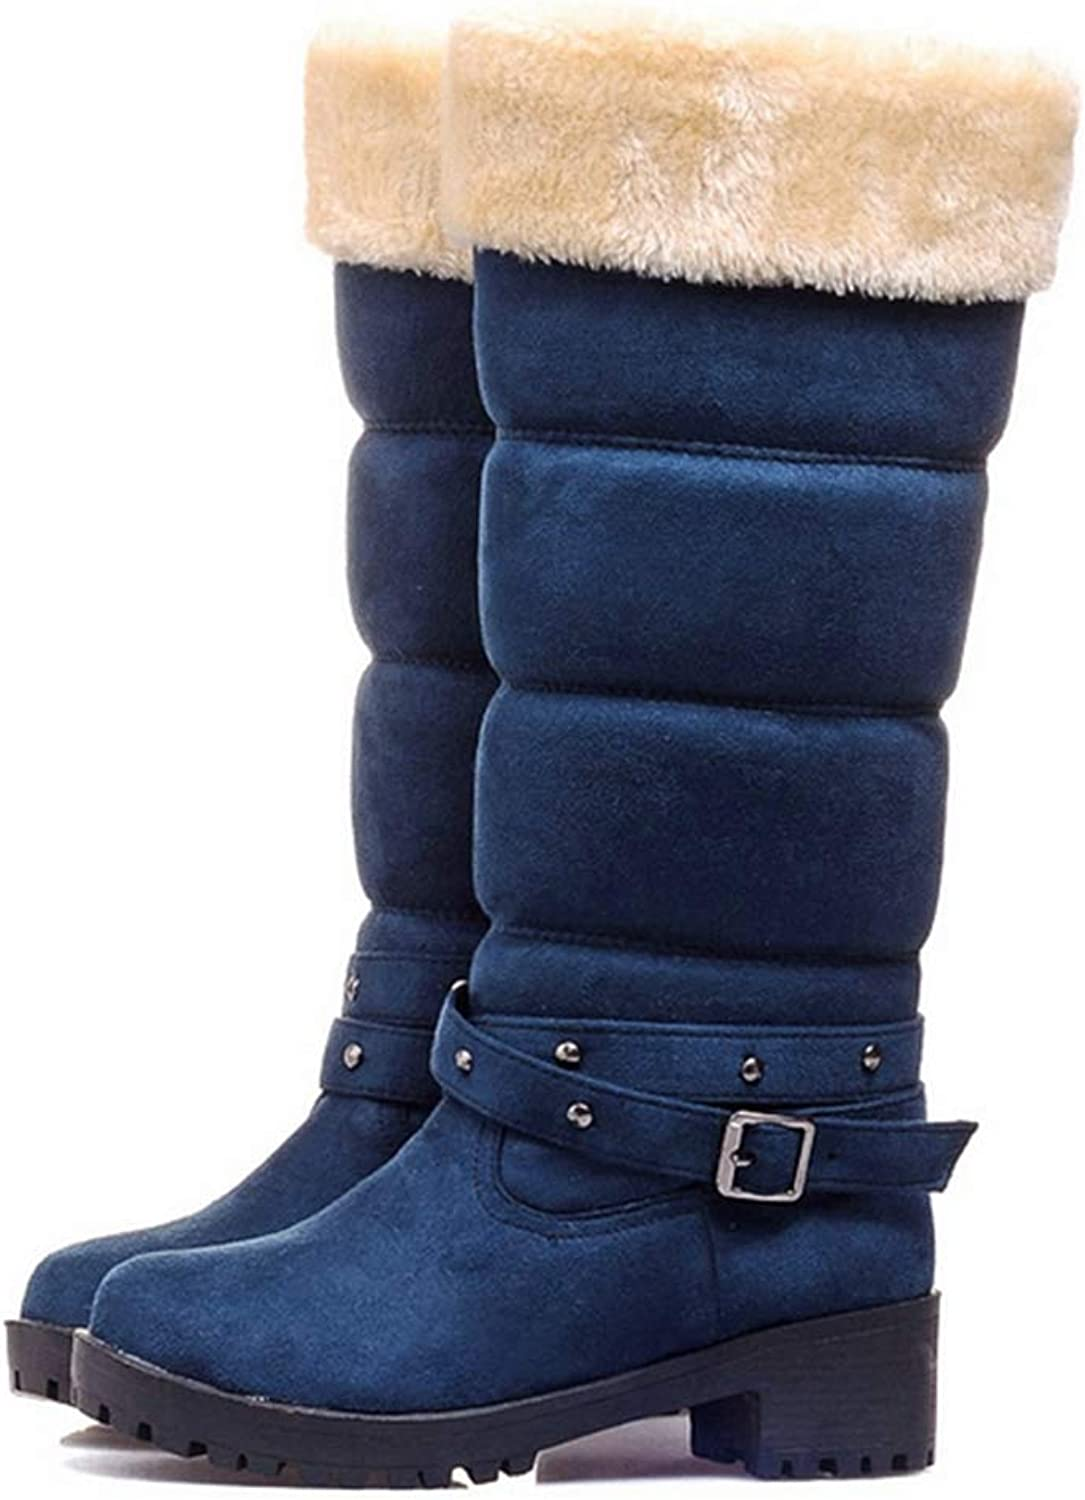 Fashion shoesbox Women's Mid-Calf Snow Boots Suede Leather Buckle Waterproof Fur Lined Low Heel Wedge Boots